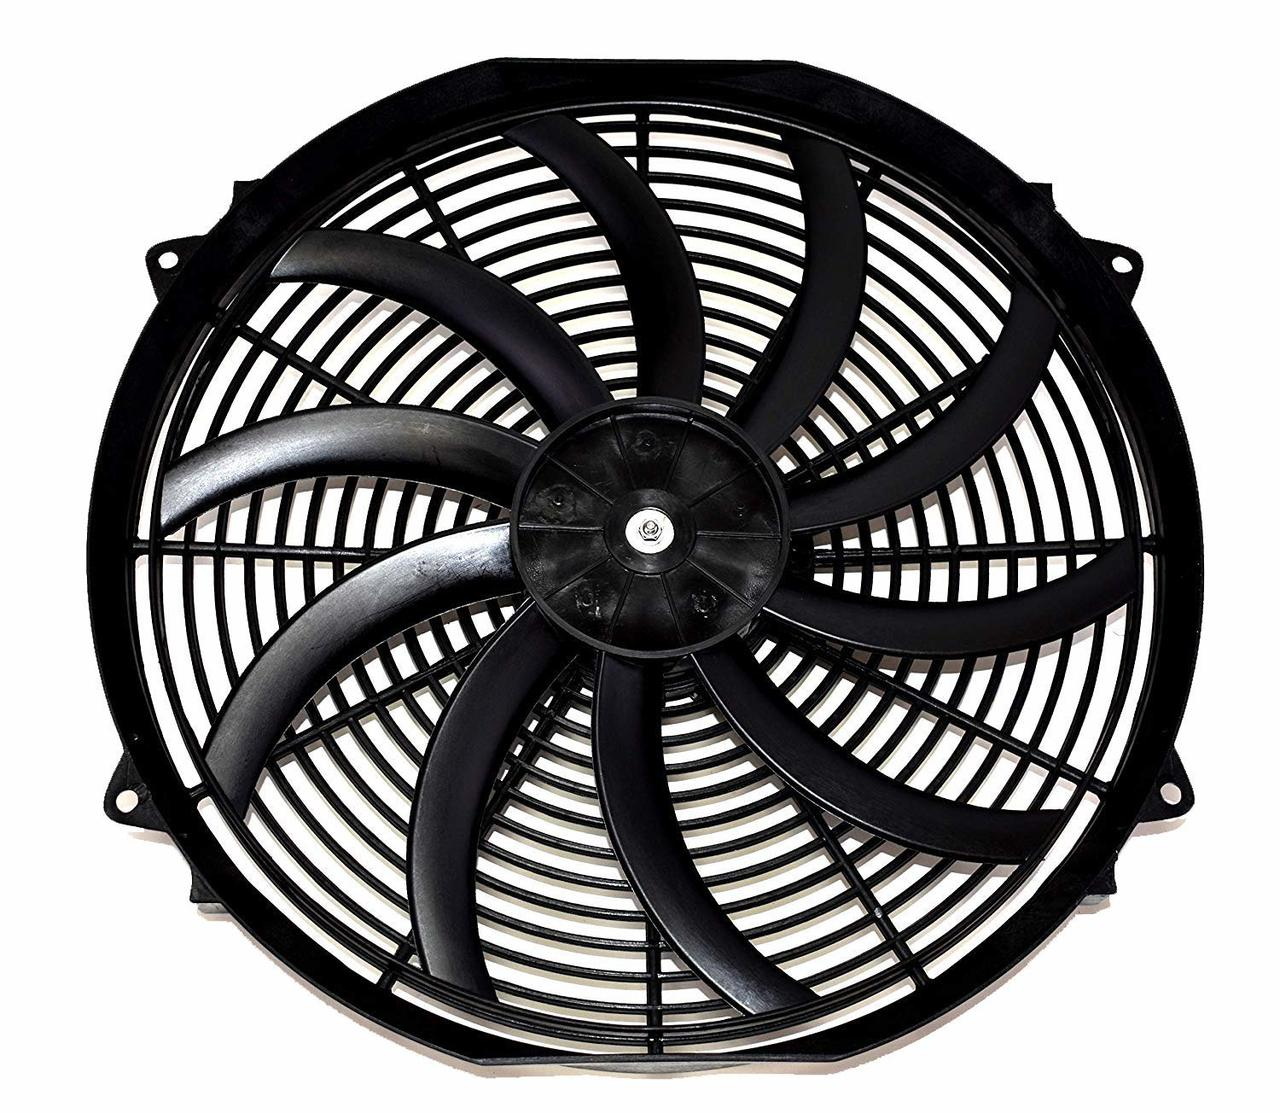 """A-Team Performance Electric Radiator Cooling Fan Cooler Heavy Duty Wide Curved 10 S Blades 12V 3000 CFM Reversible Push or Pull with Mounting Kit Black 16"""""""